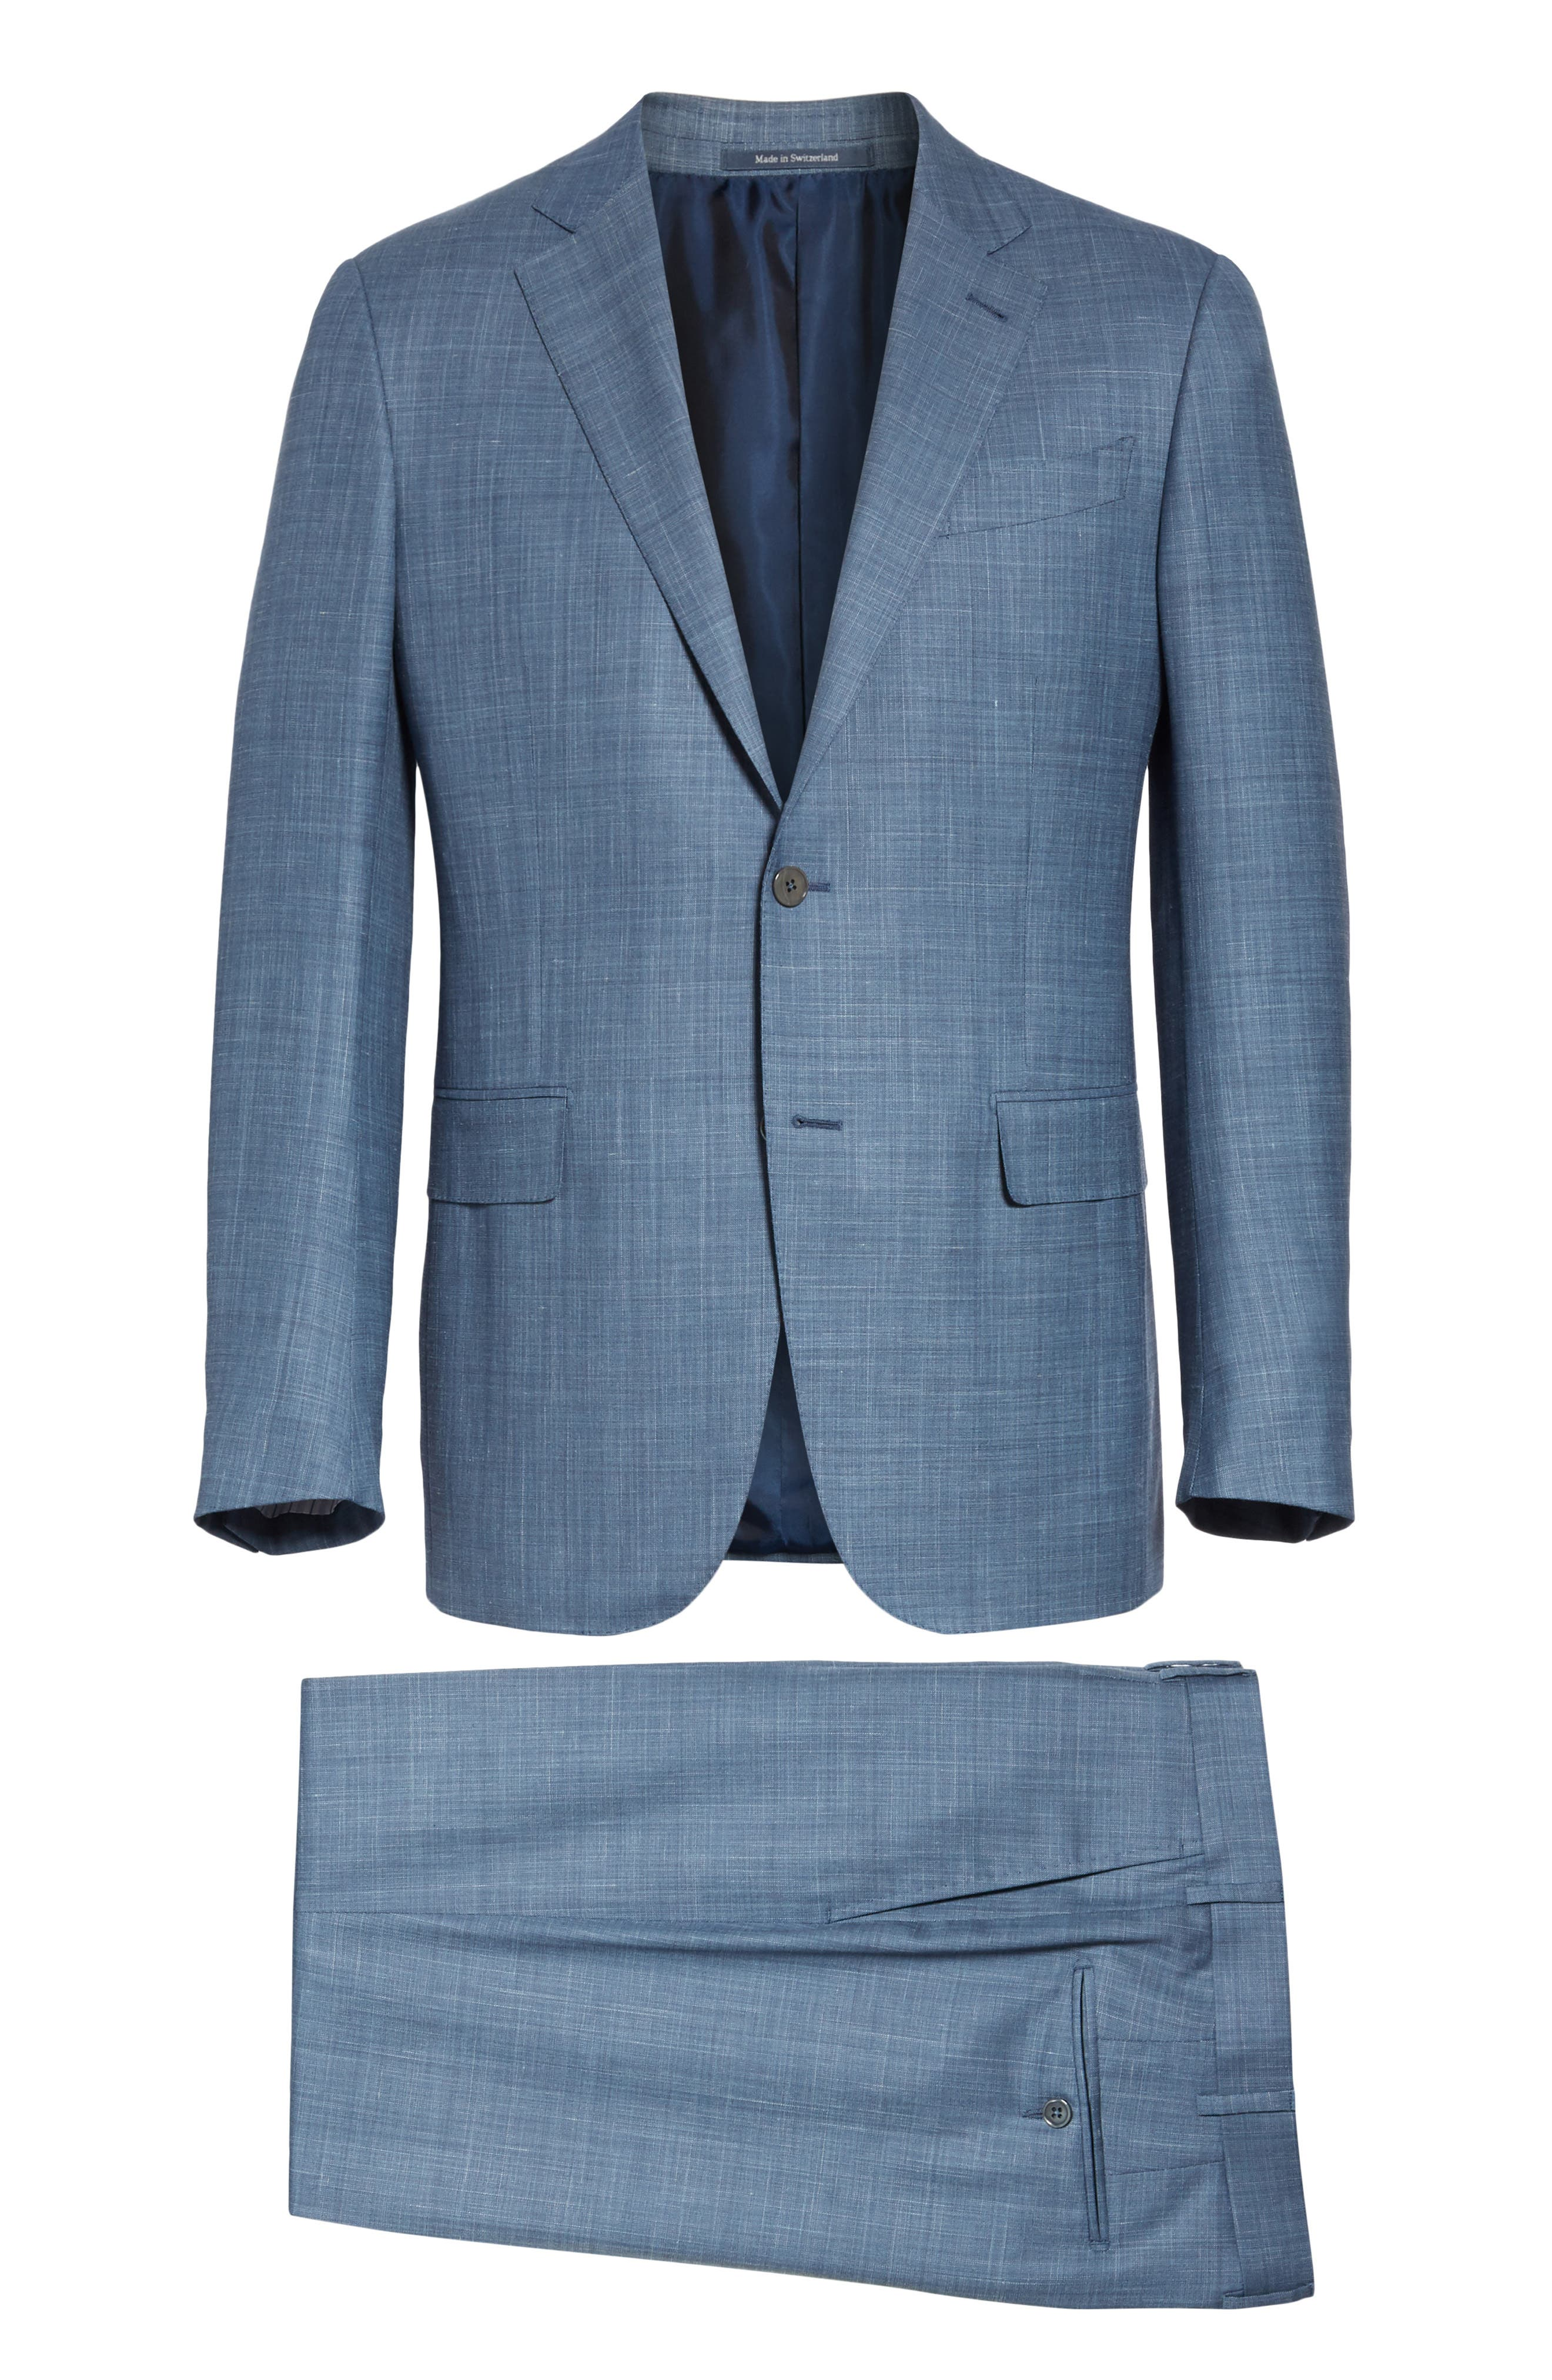 ERMENEGILDO ZEGNA, Trofeo Classic Fit Solid Wool Blend Suit, Alternate thumbnail 8, color, BLUE